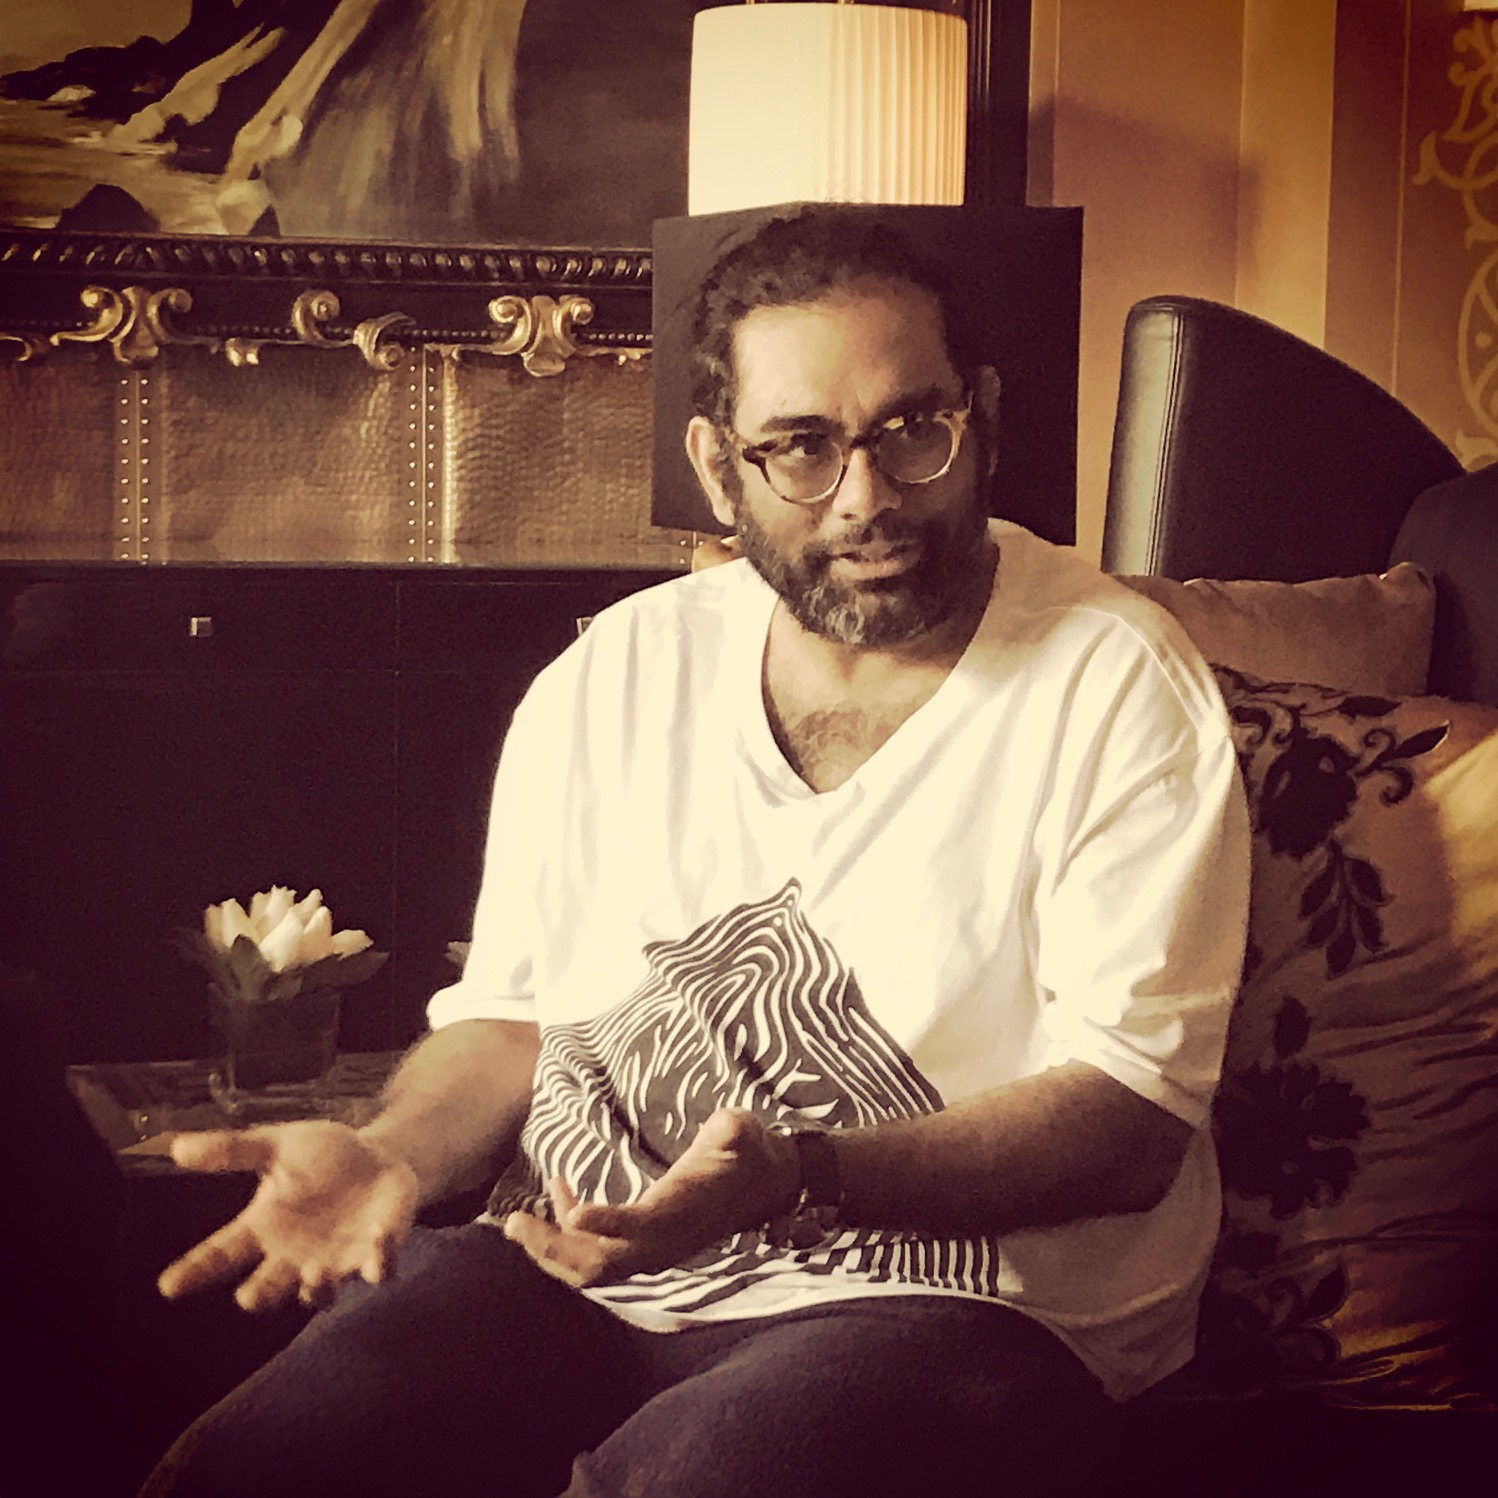 Chef Gaggan Anand in Dubai - Dubai restaurants - Foodiva